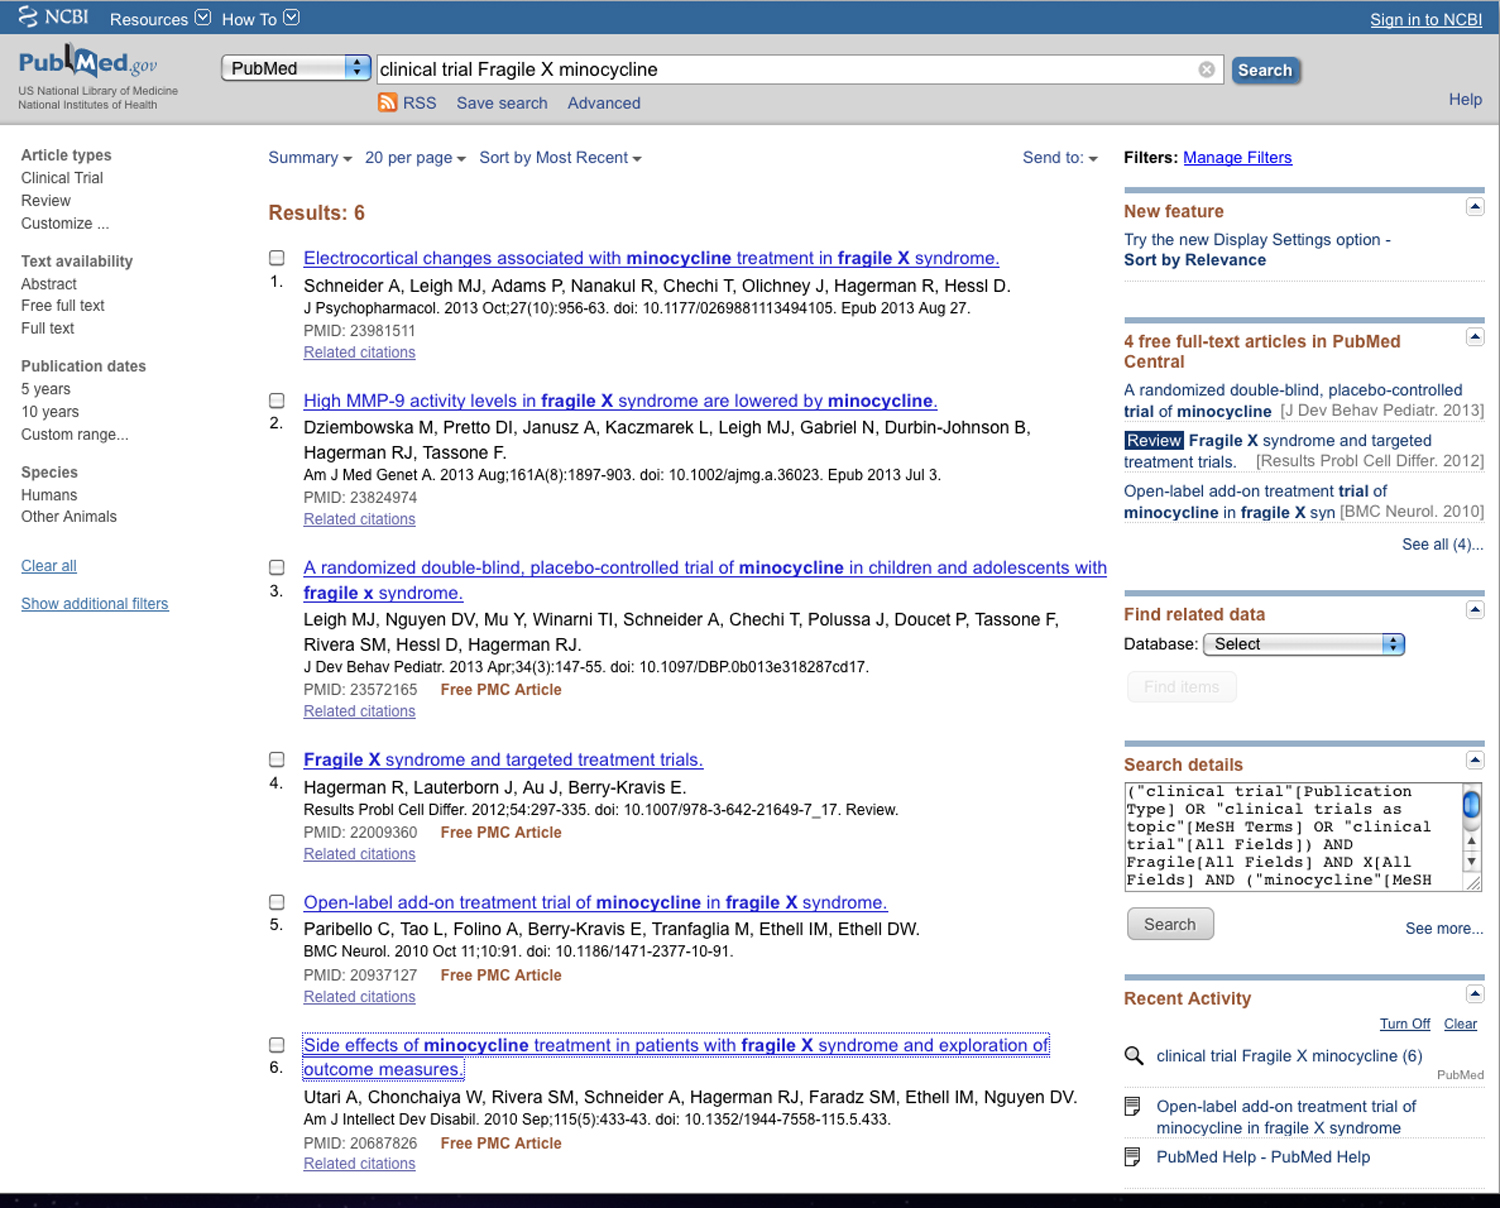 img2-2 Pubmed - clinical trial Fragile X minocycline - Screen shot 2015-04-17 at 4.35.16 PM